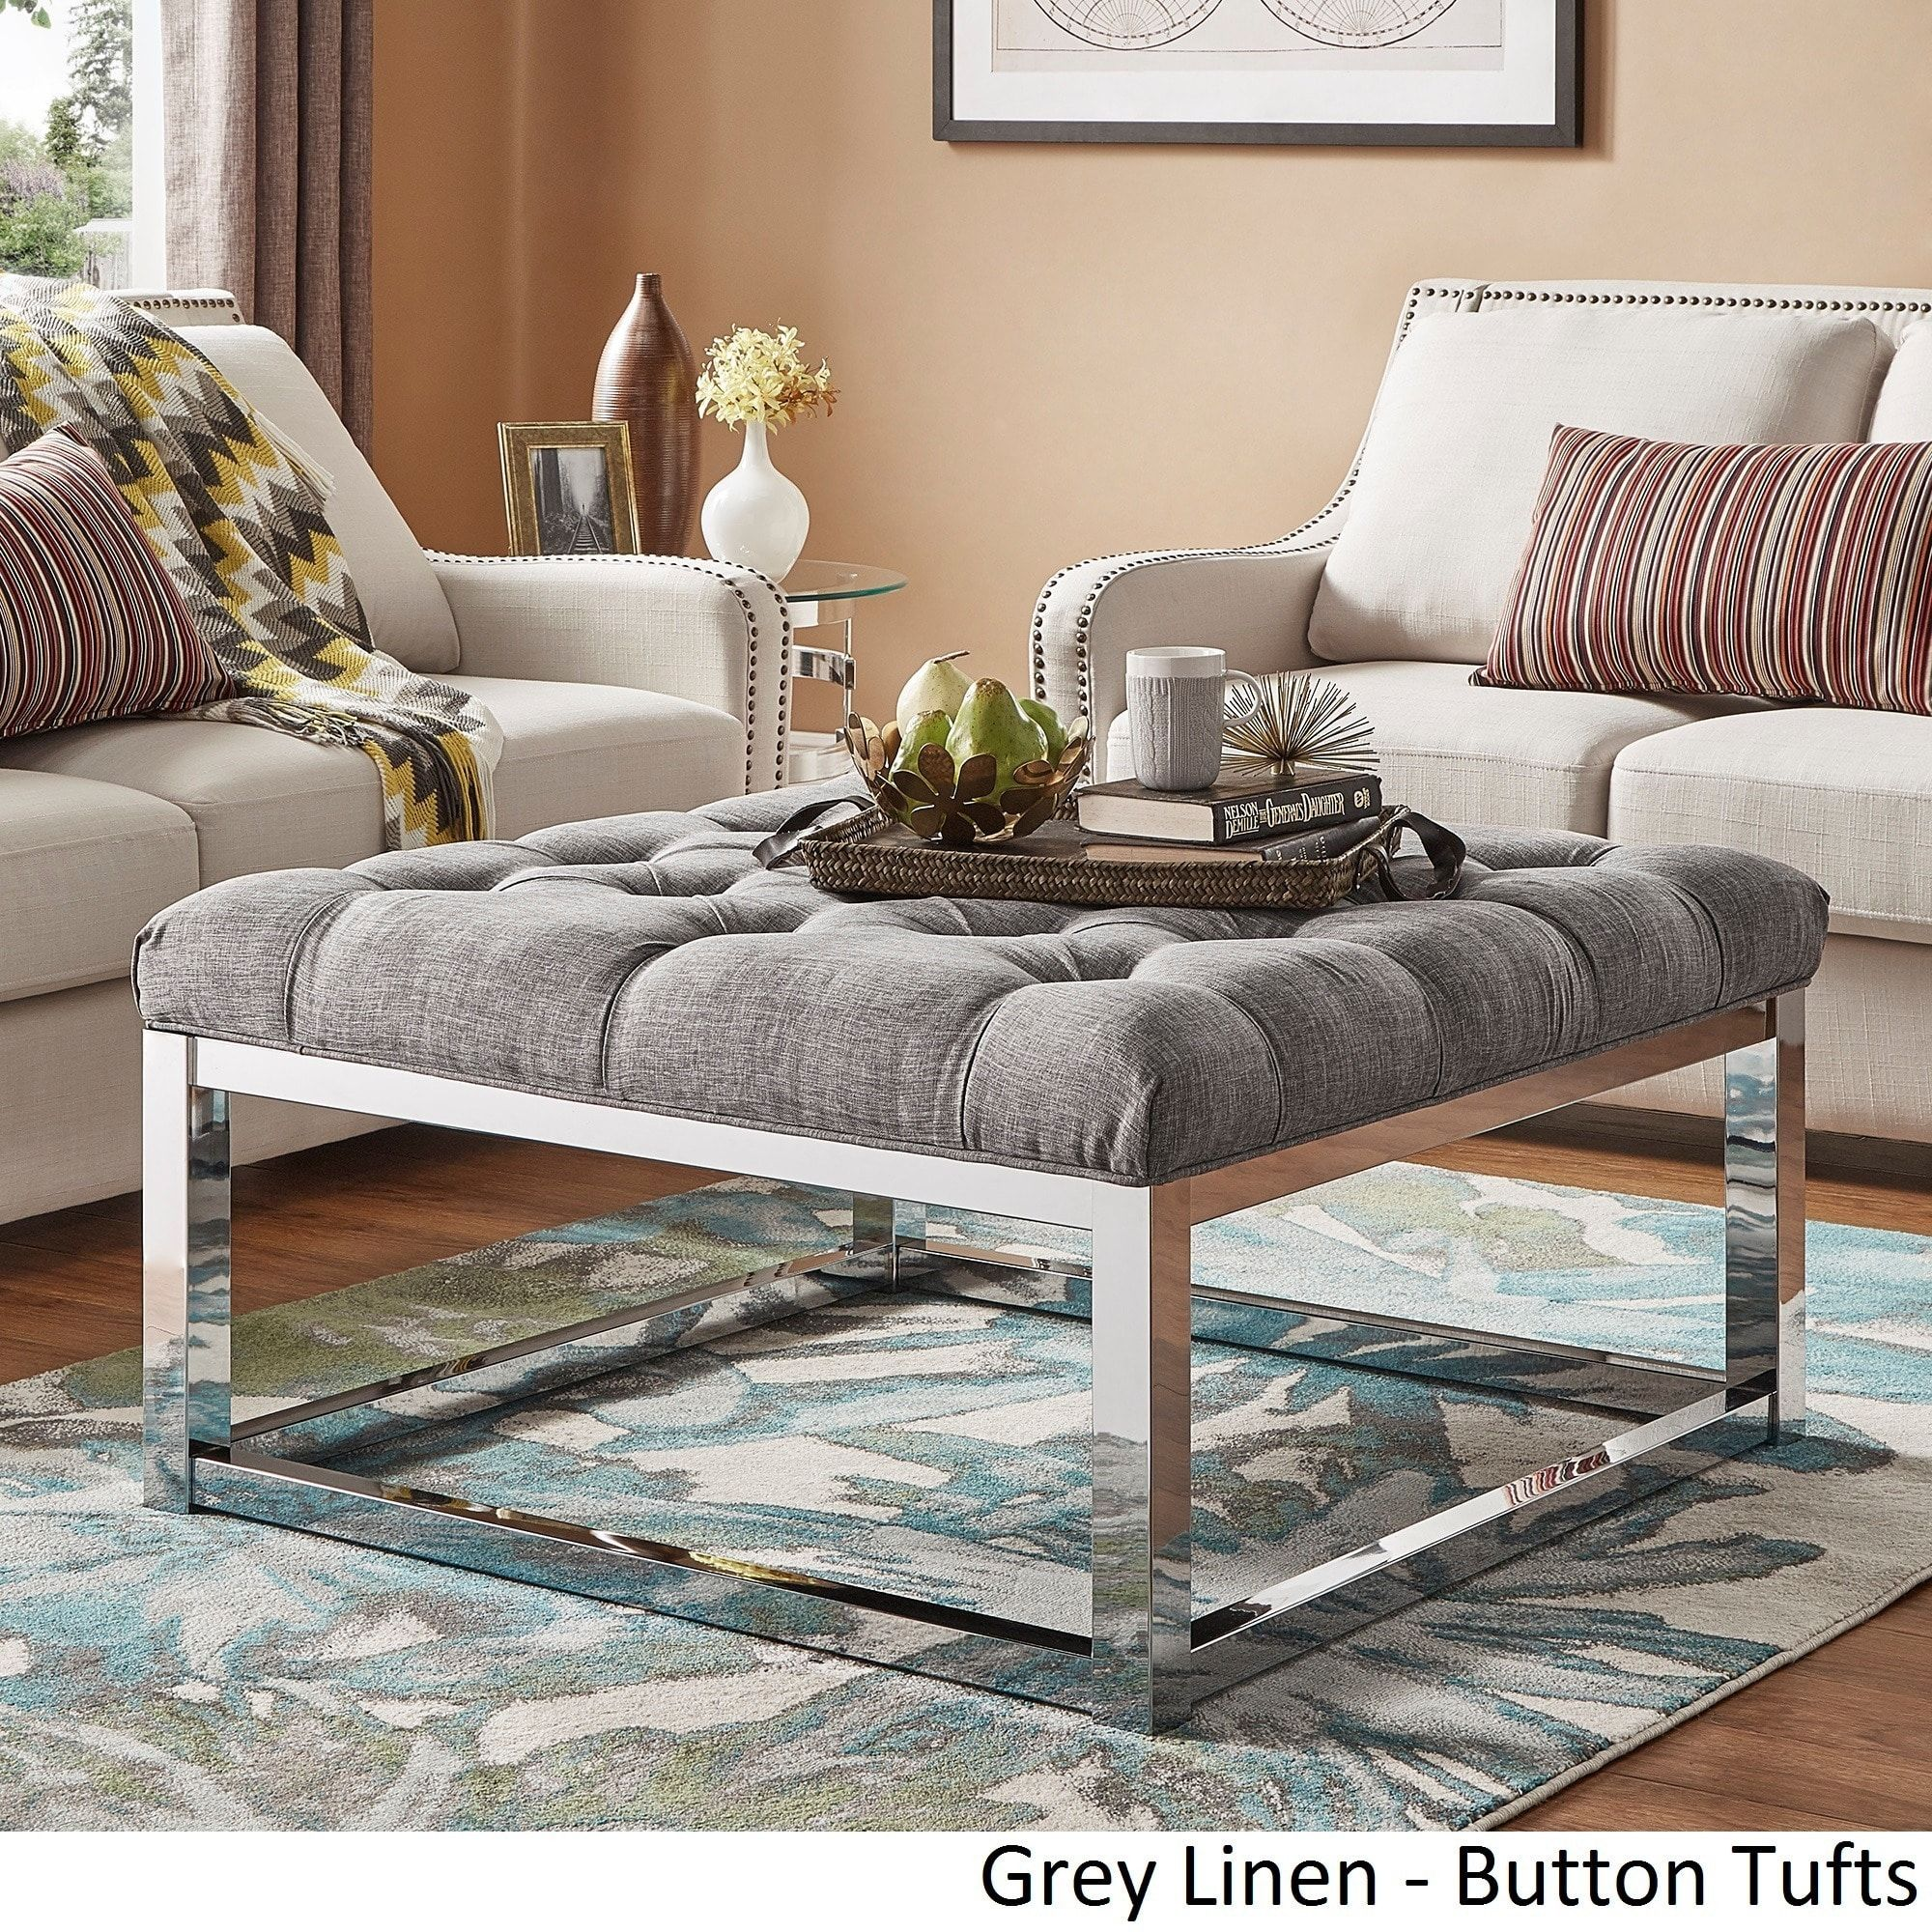 Solene Square Base Ottoman Coffee Table - Chrome by iNSPIRE Q Bold ([Beige  Linen]- Smooth Top), Size Large